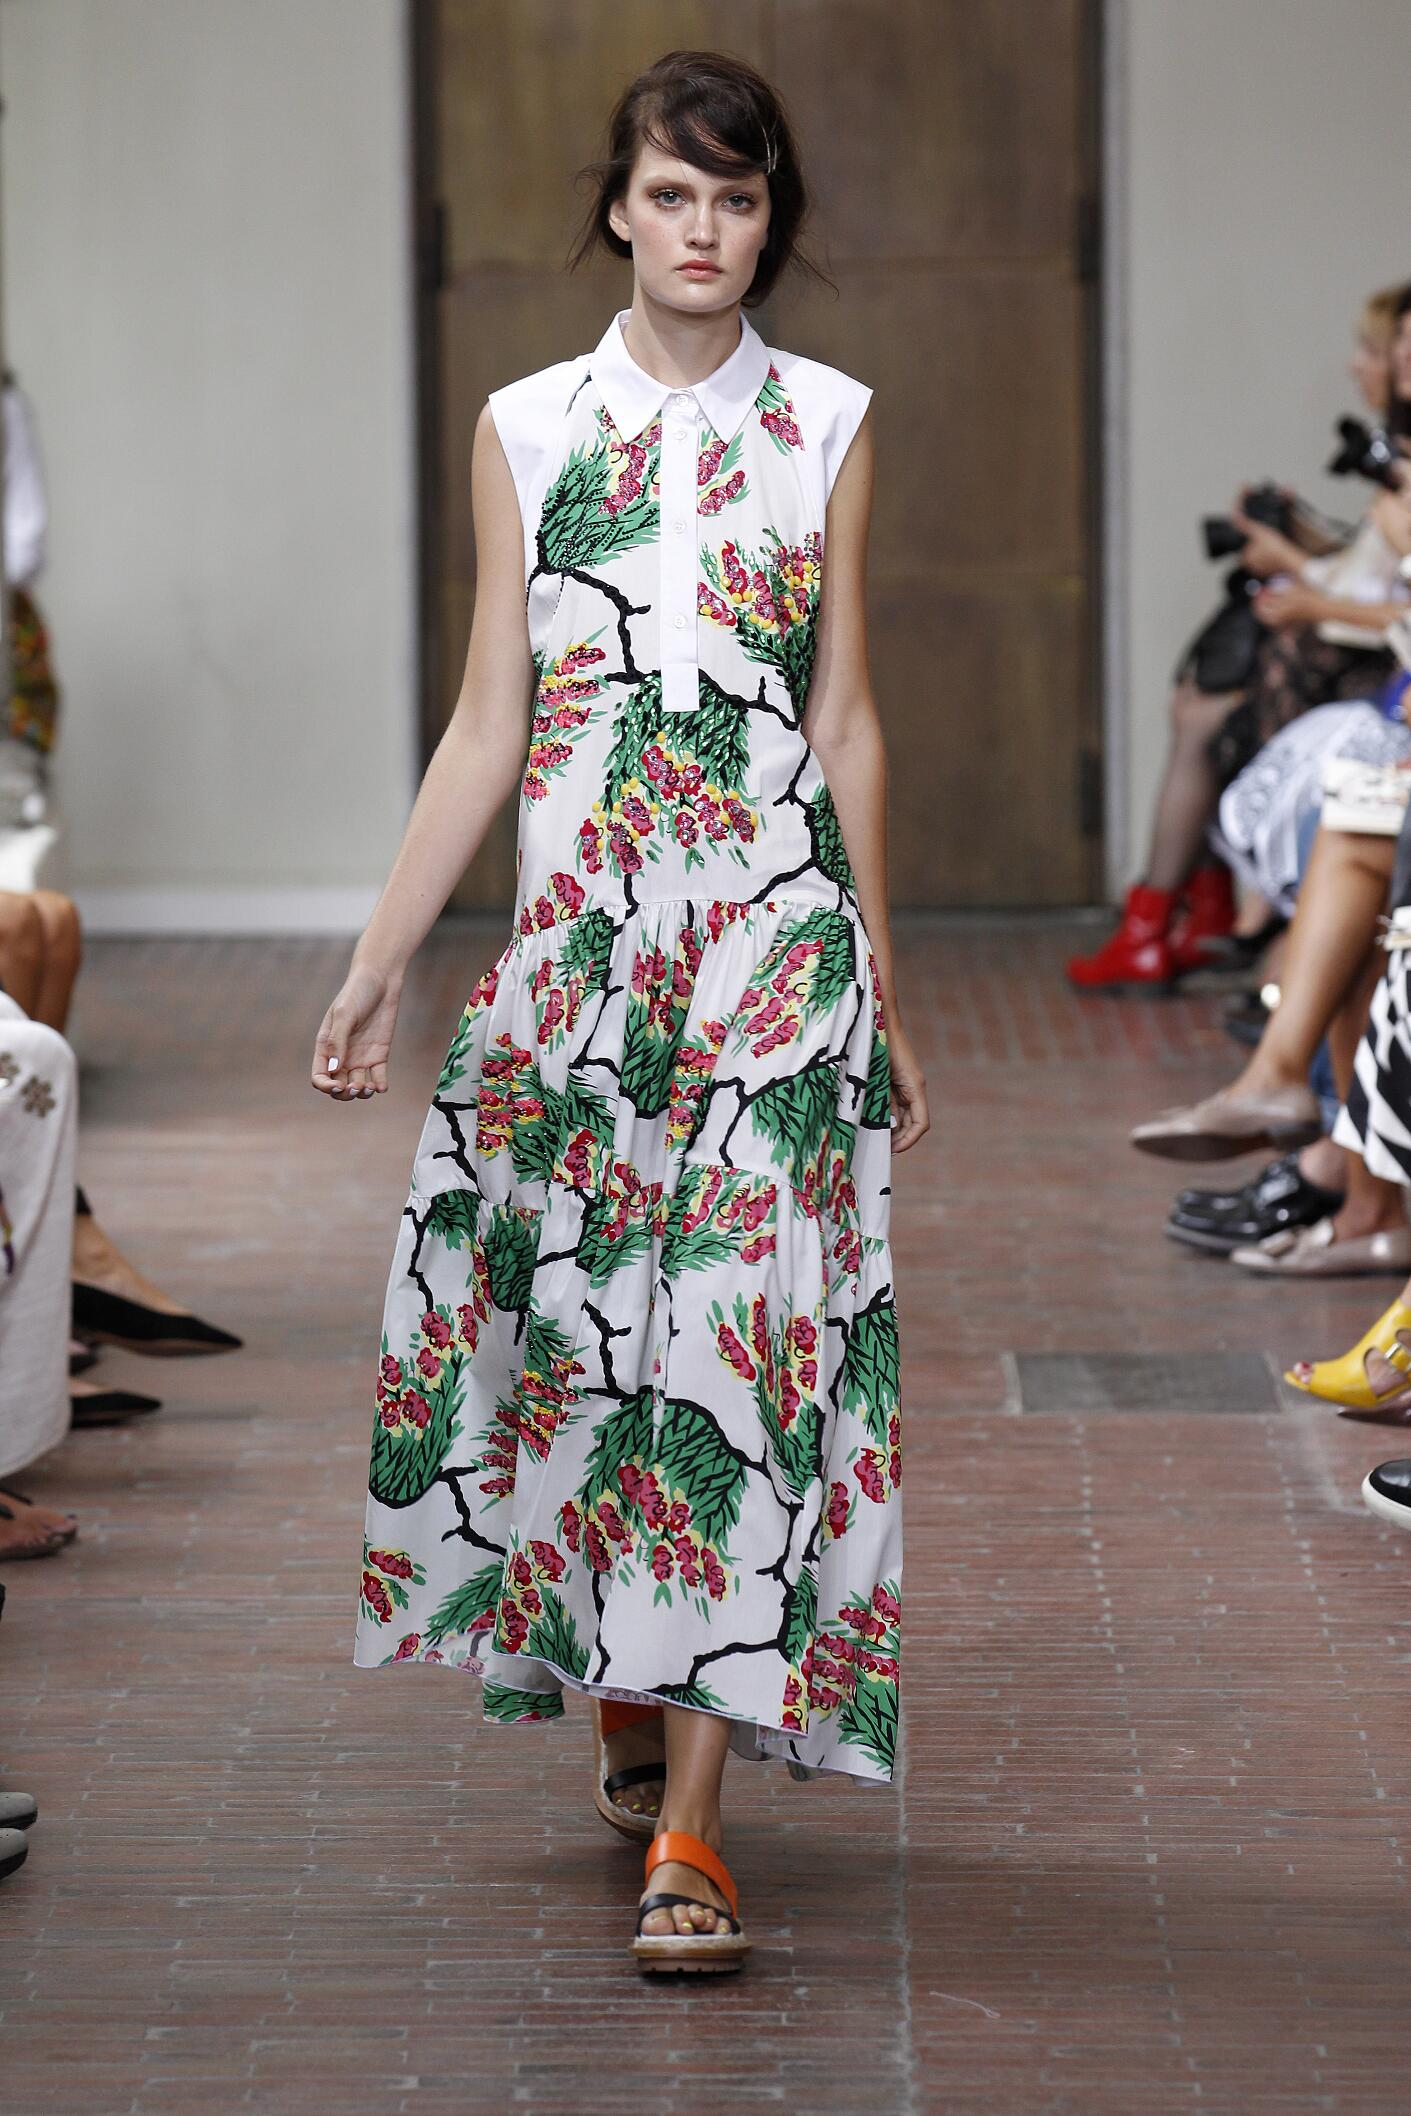 2015 Catwalk I'm Isola Marras Woman Fashion Show Summer